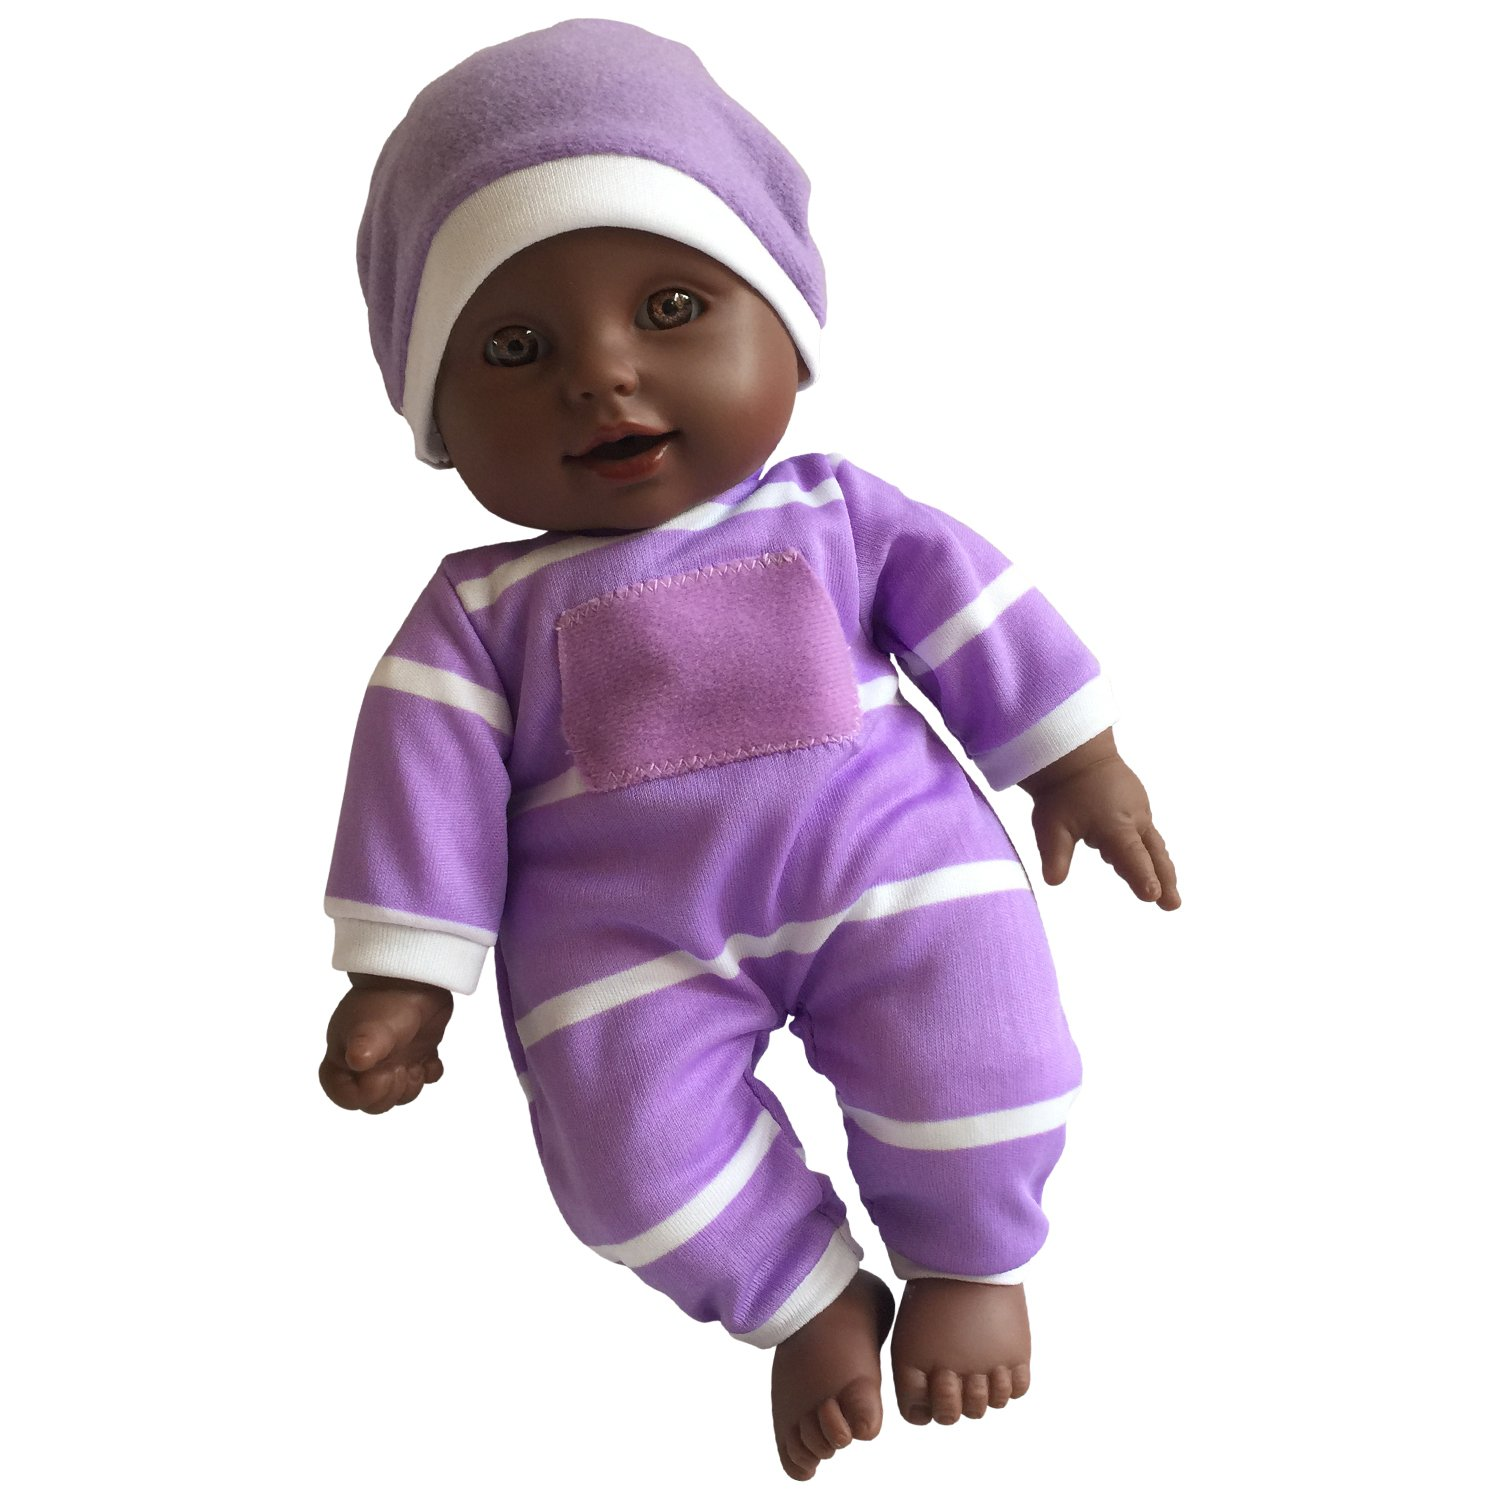 """11 inch Soft Body Doll in Gift Box - 11"""" Baby Doll (African American)"""